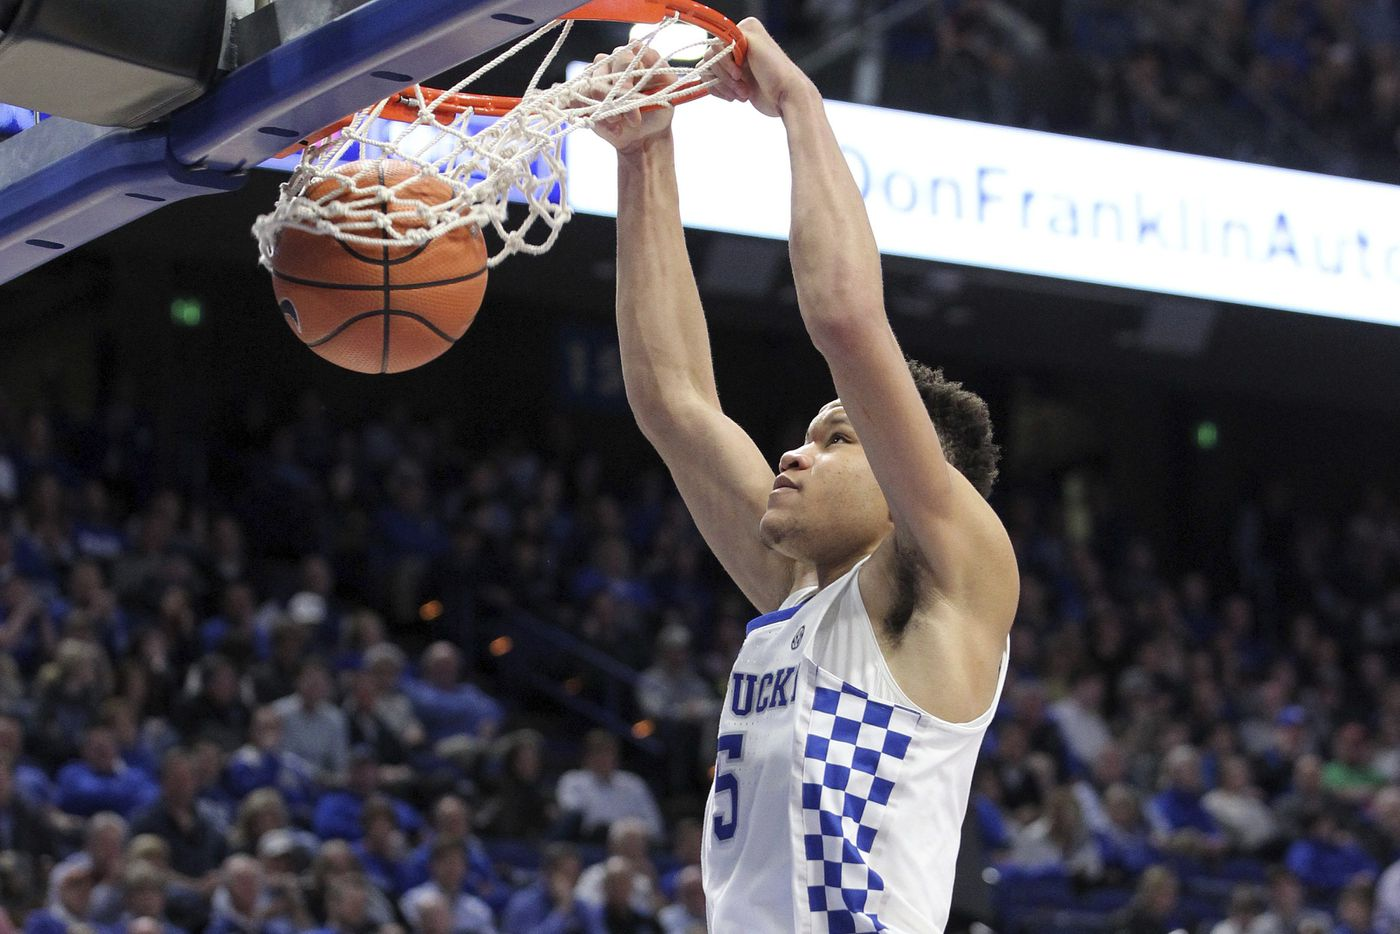 Kentucky freshman Kevin Knox expected to work out for Sixers